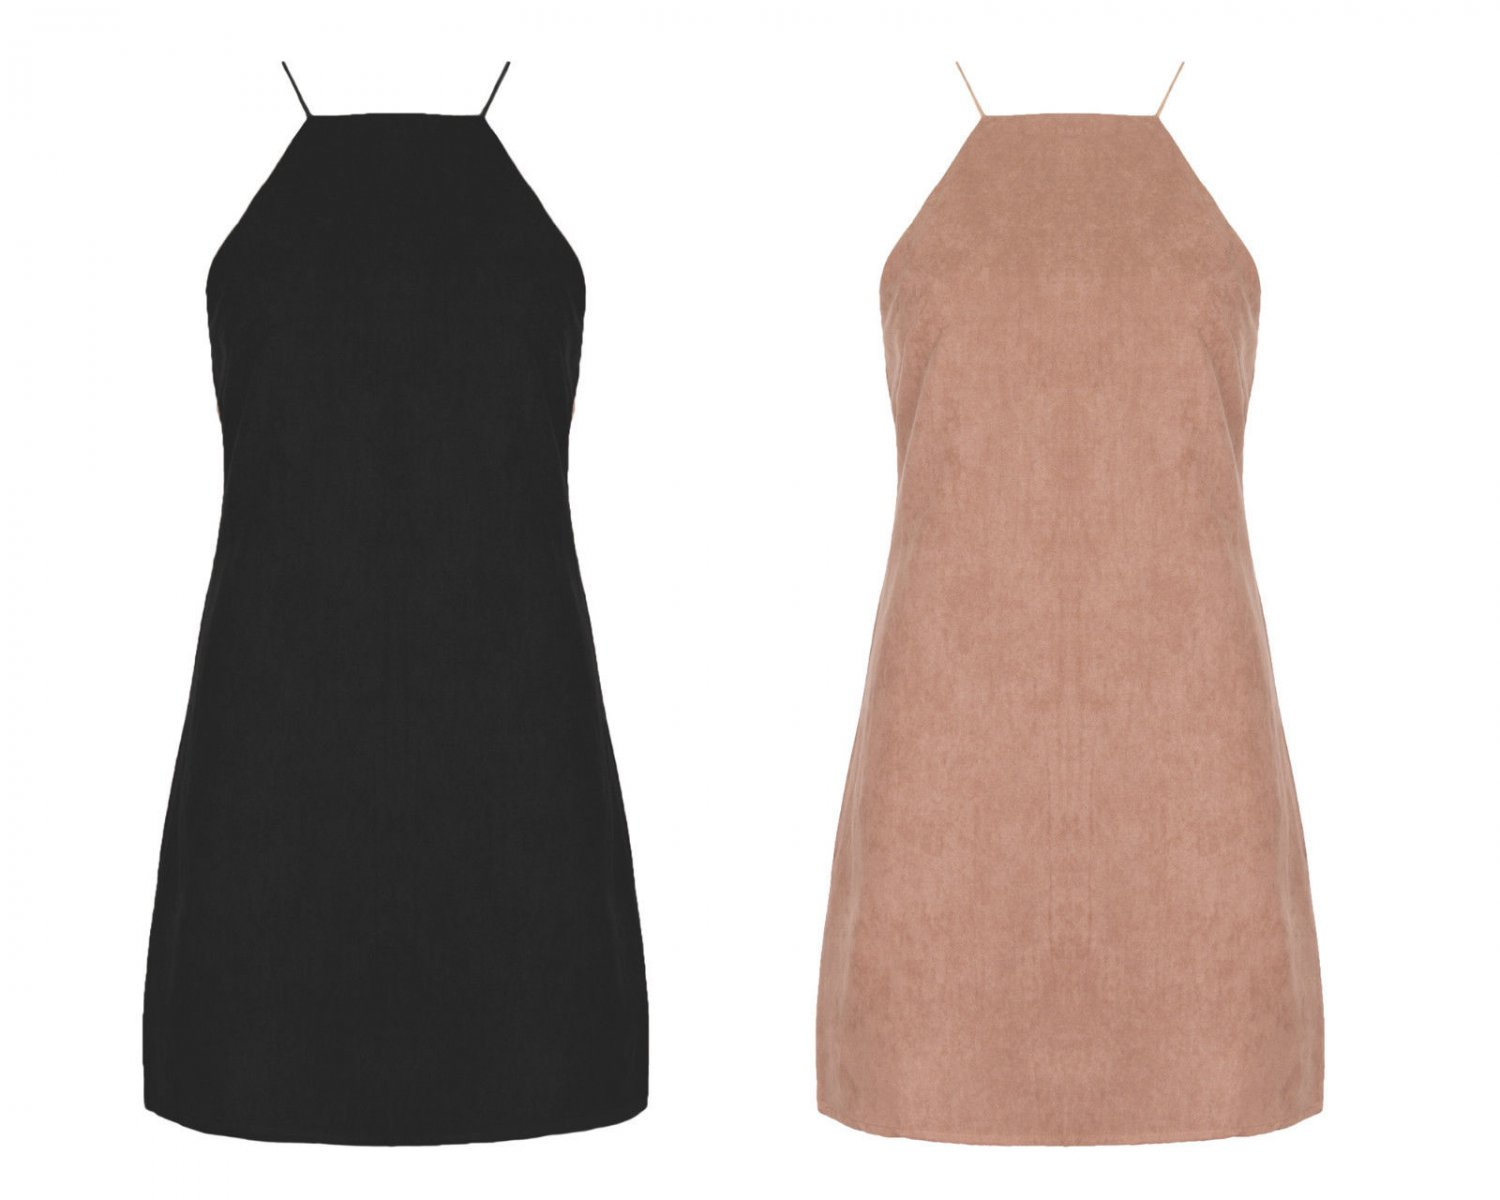 New Women Suede Mini Sexy Dress Rouleaux Straps Tunic Pinafore A Line UK Size 14 Tan